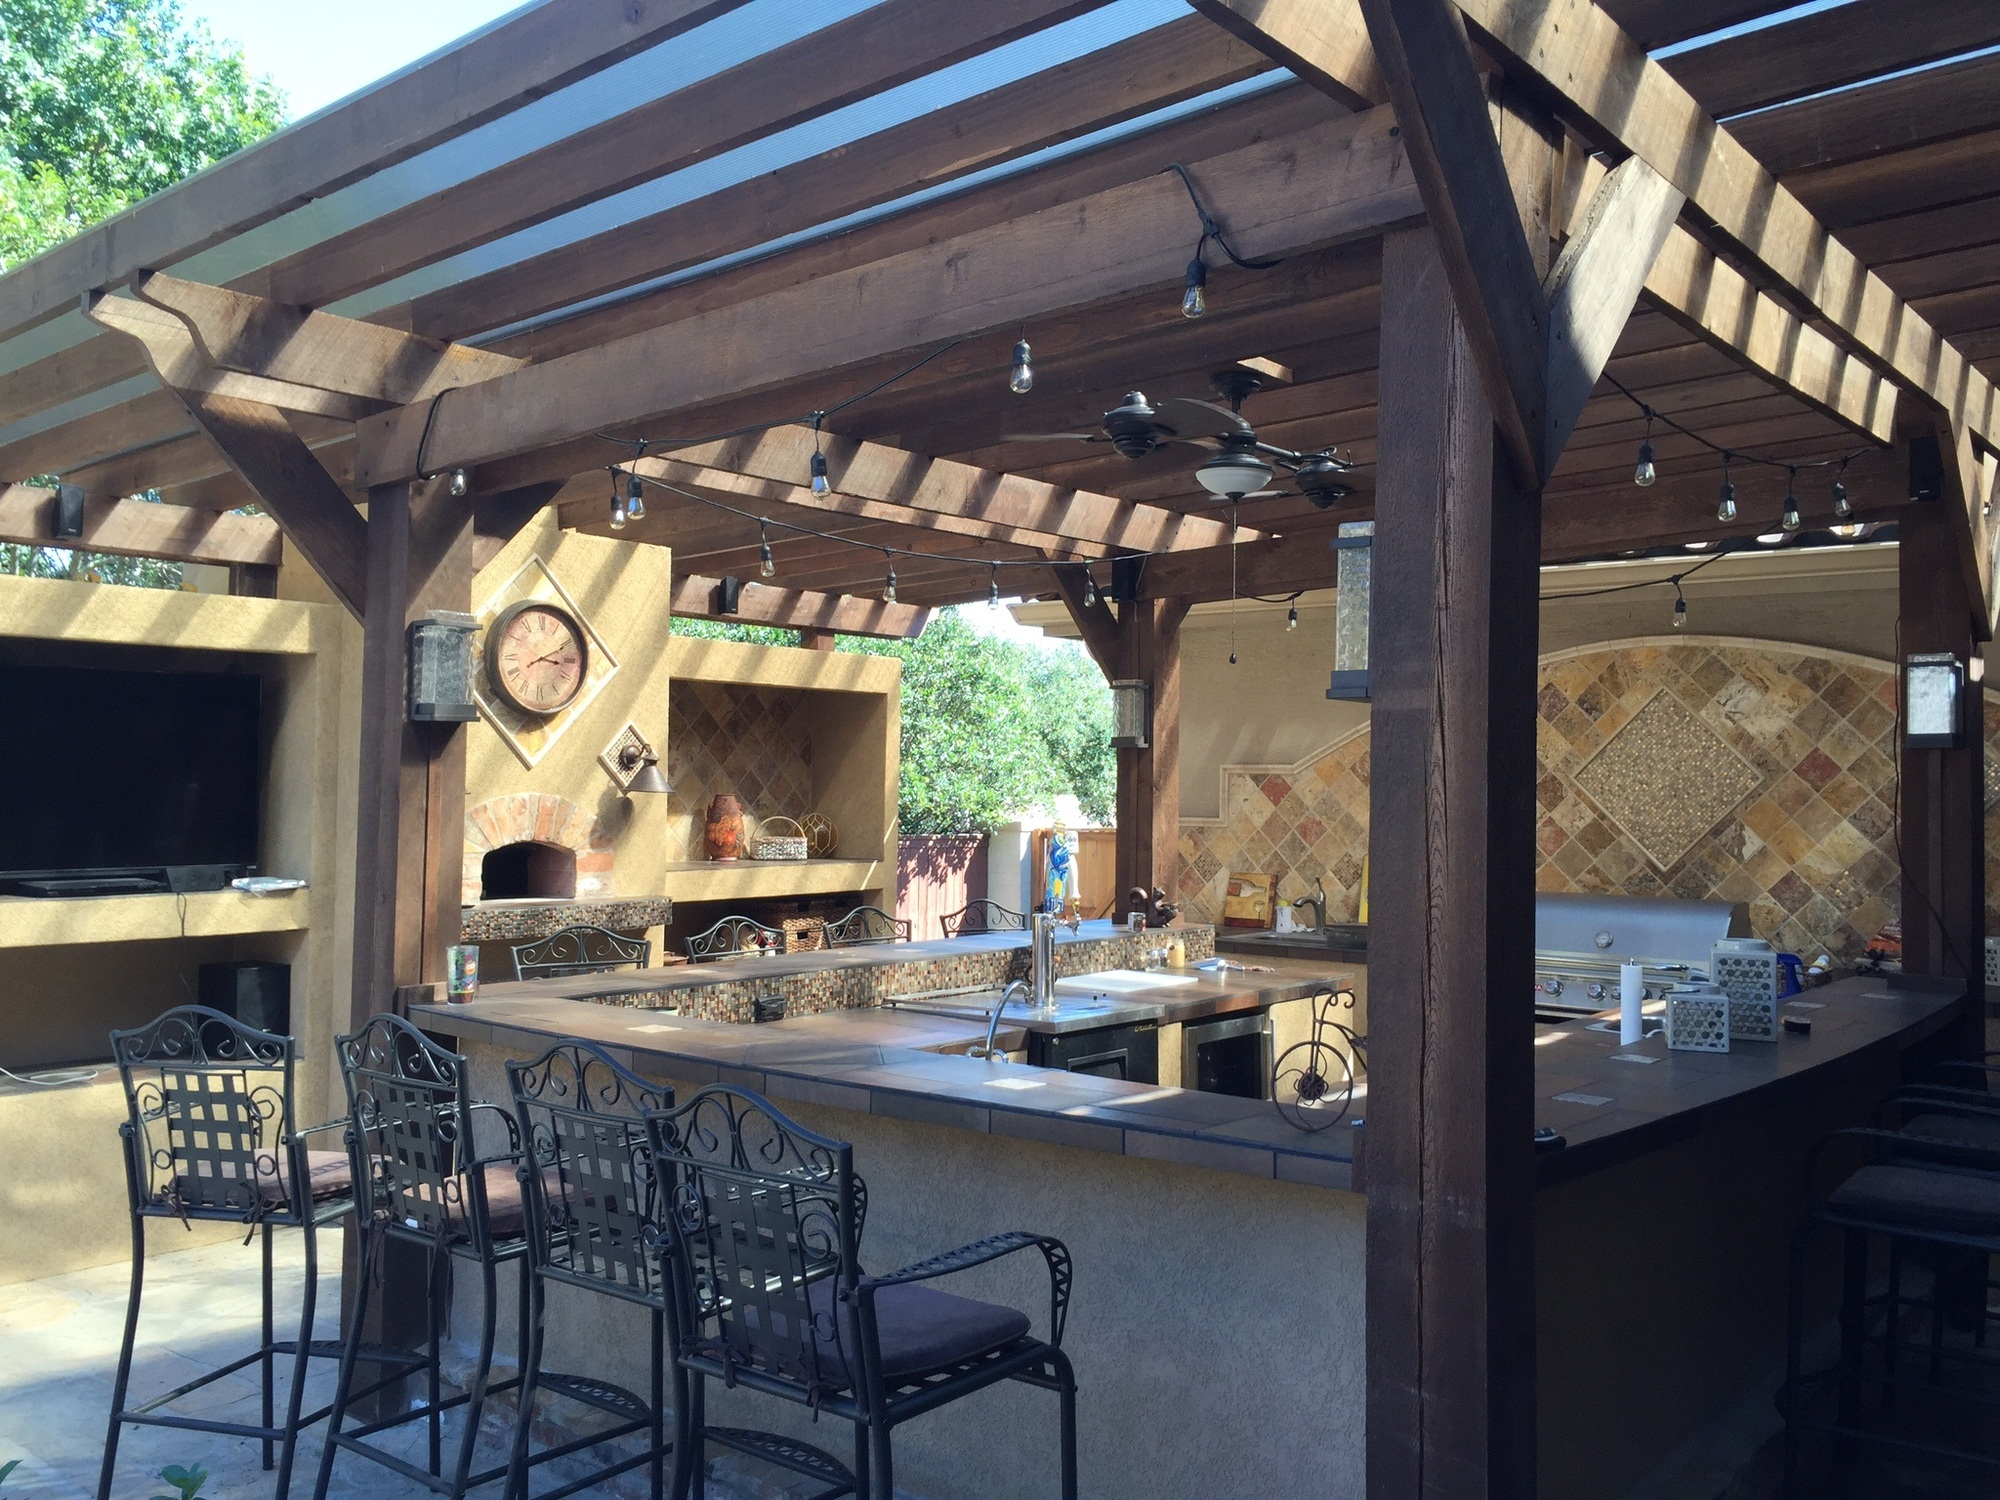 7 Things You Need to Include in Your Backyard Kitchen